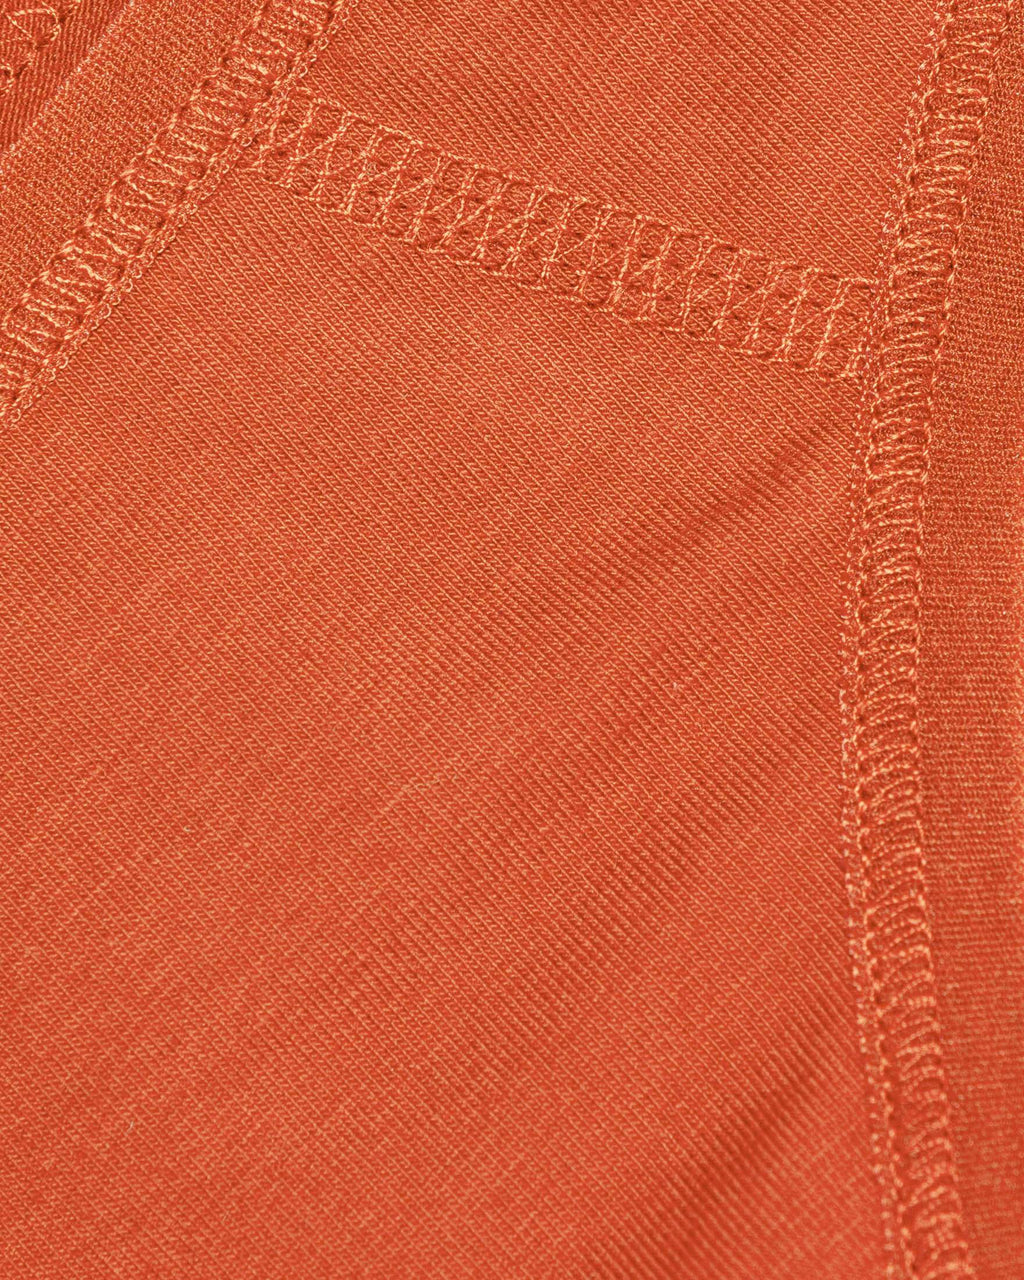 variant_4 | EN Thong orange Women underwear  | DE Tangaslip orange damen unterwäsche